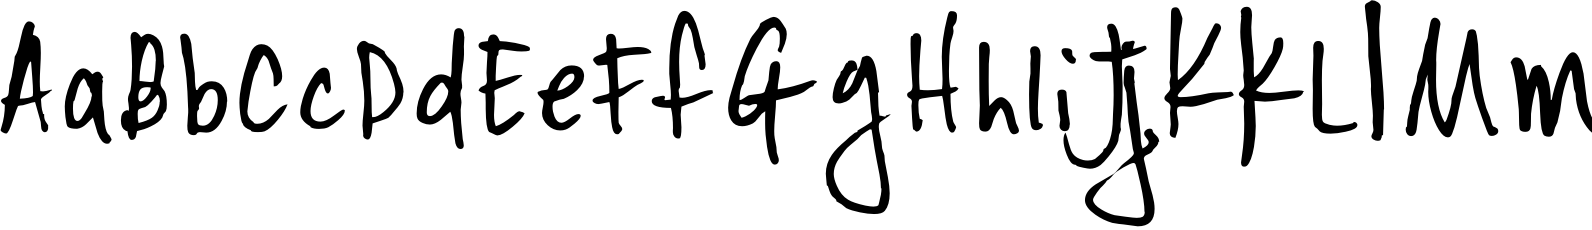 YWFT Signature Alternate Light Font